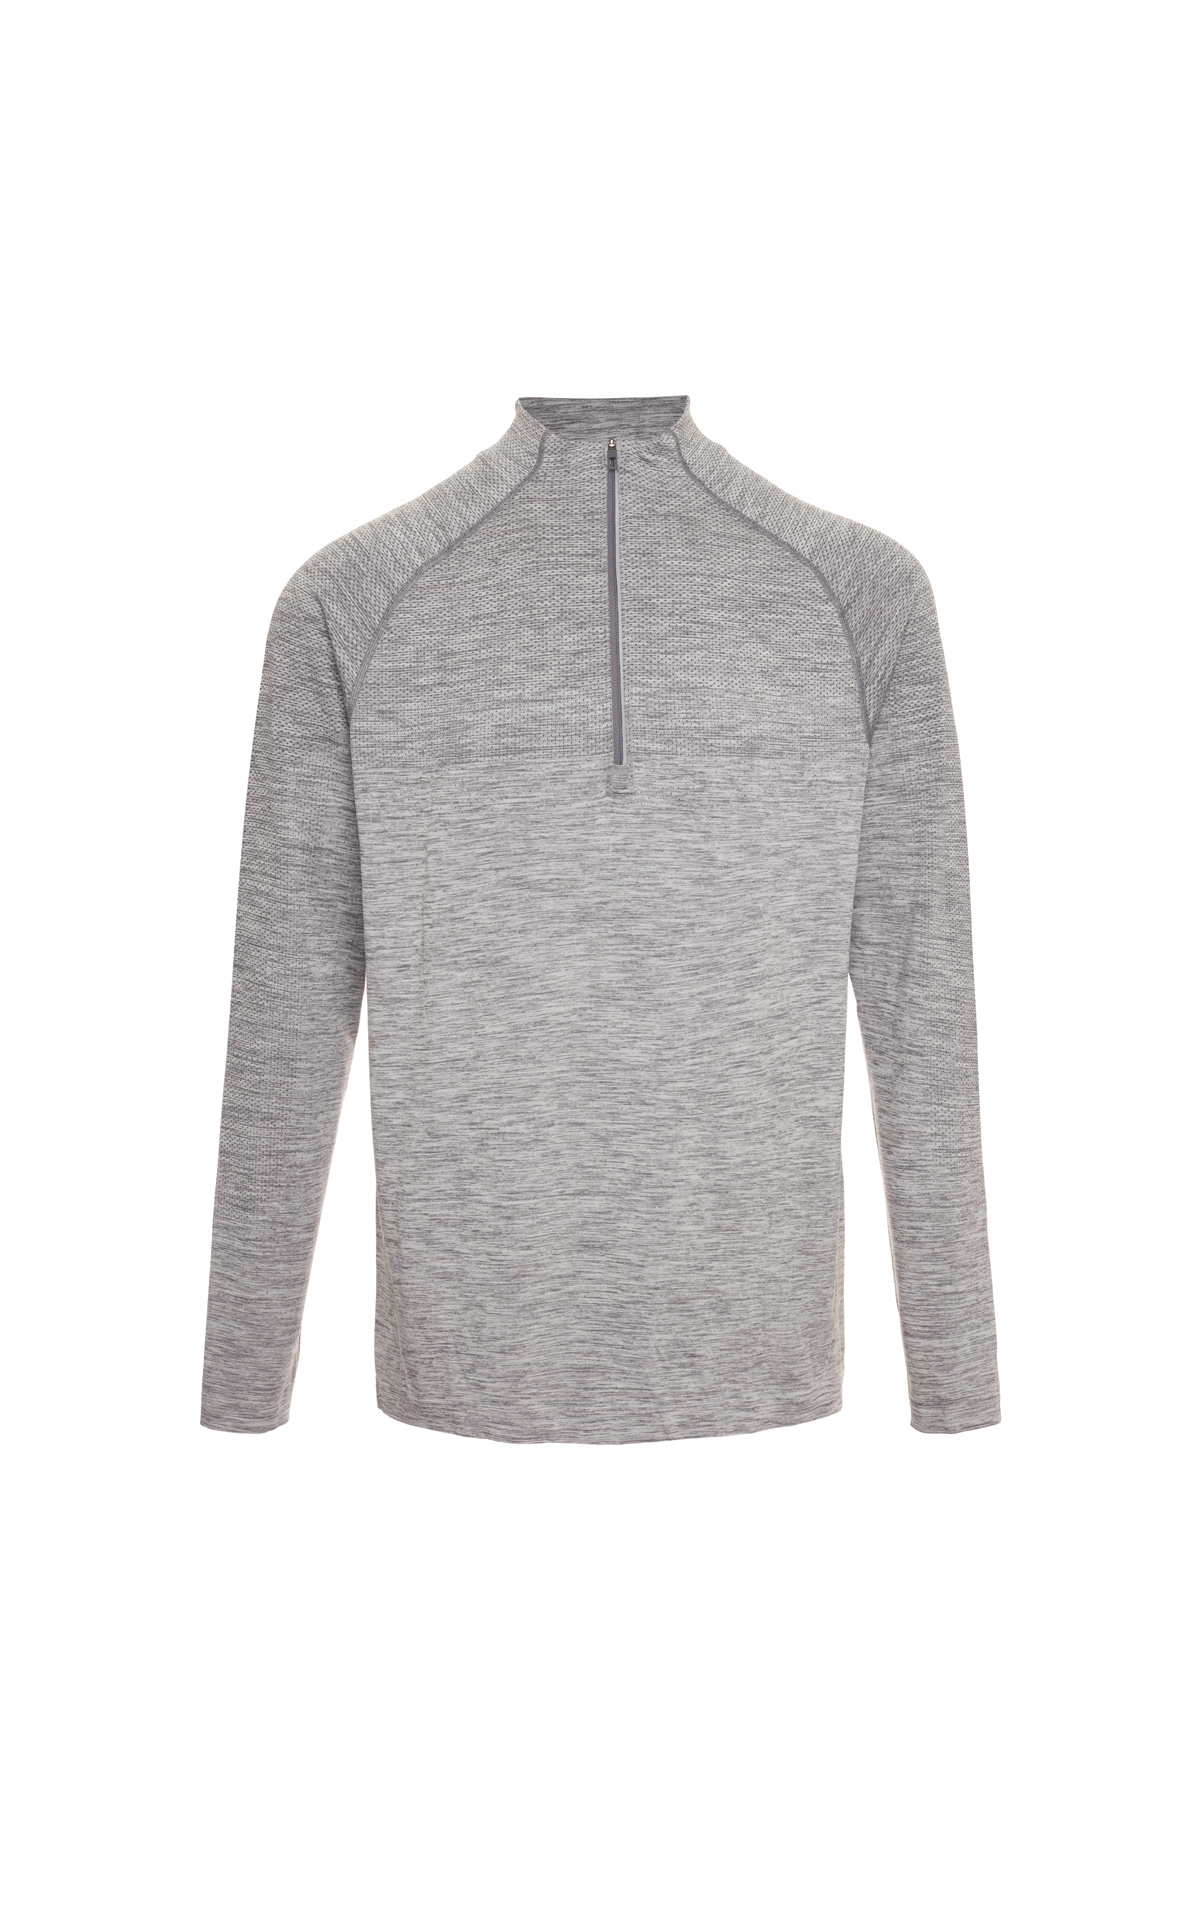 Lululemon  MVT 1/2 zip  from Bicester Village